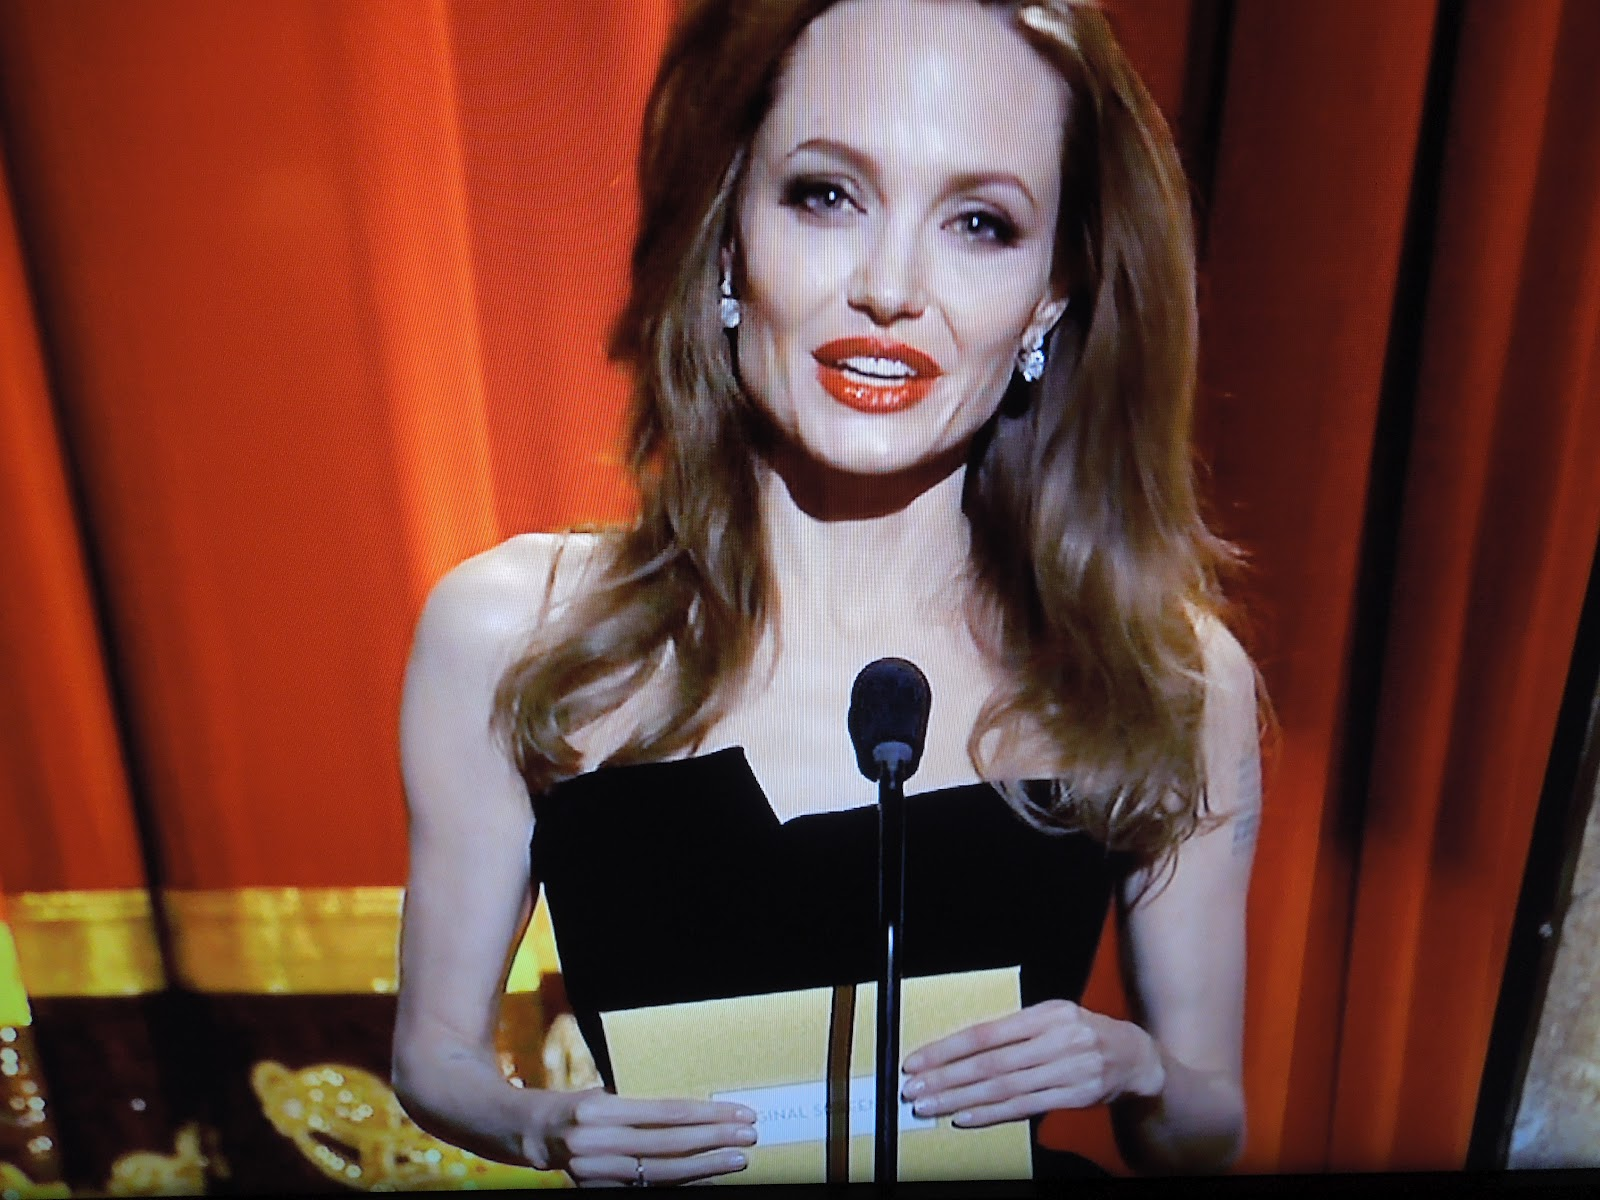 Angelina at the Academy Awards: Too Thin or Fashion Win